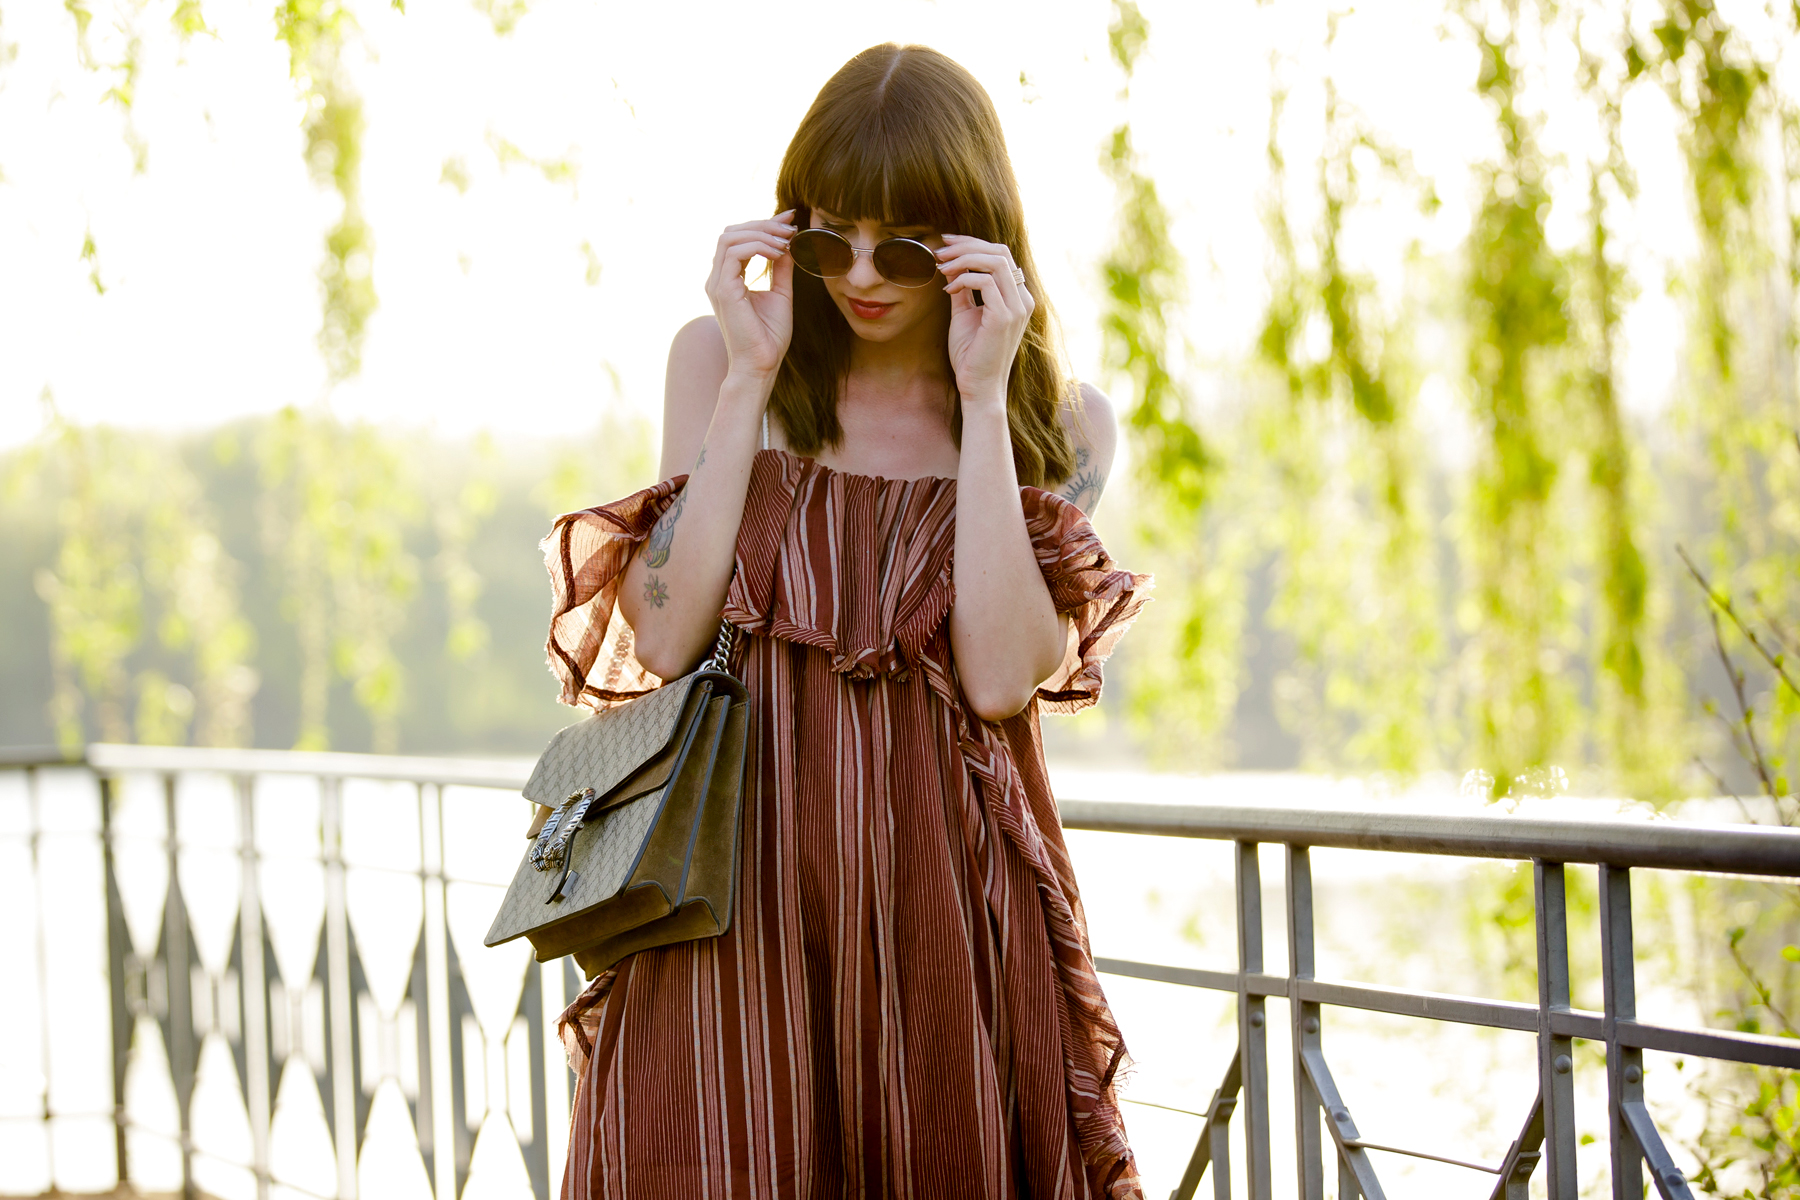 free people off shoulder hippie dress shopbop summer style zara gold flower heels round sunglasses boho vintage chic gucci dionysus fashionblogger cats & dogs modeblog ricarda schernus blogger düsseldorf 3